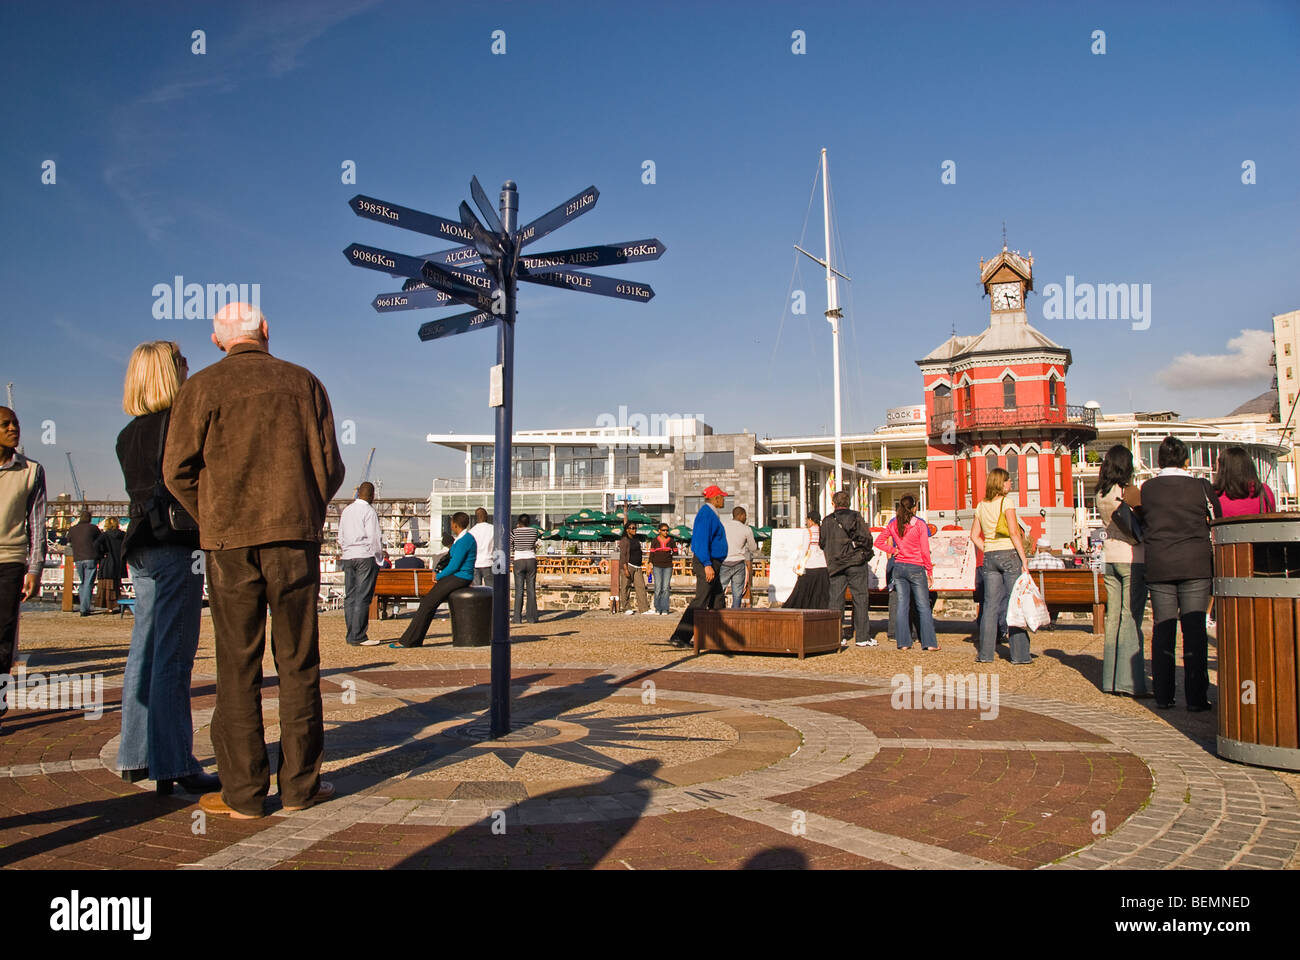 People in the streets of the waterfront. Cape Town, South Africa, Africa - Stock Image